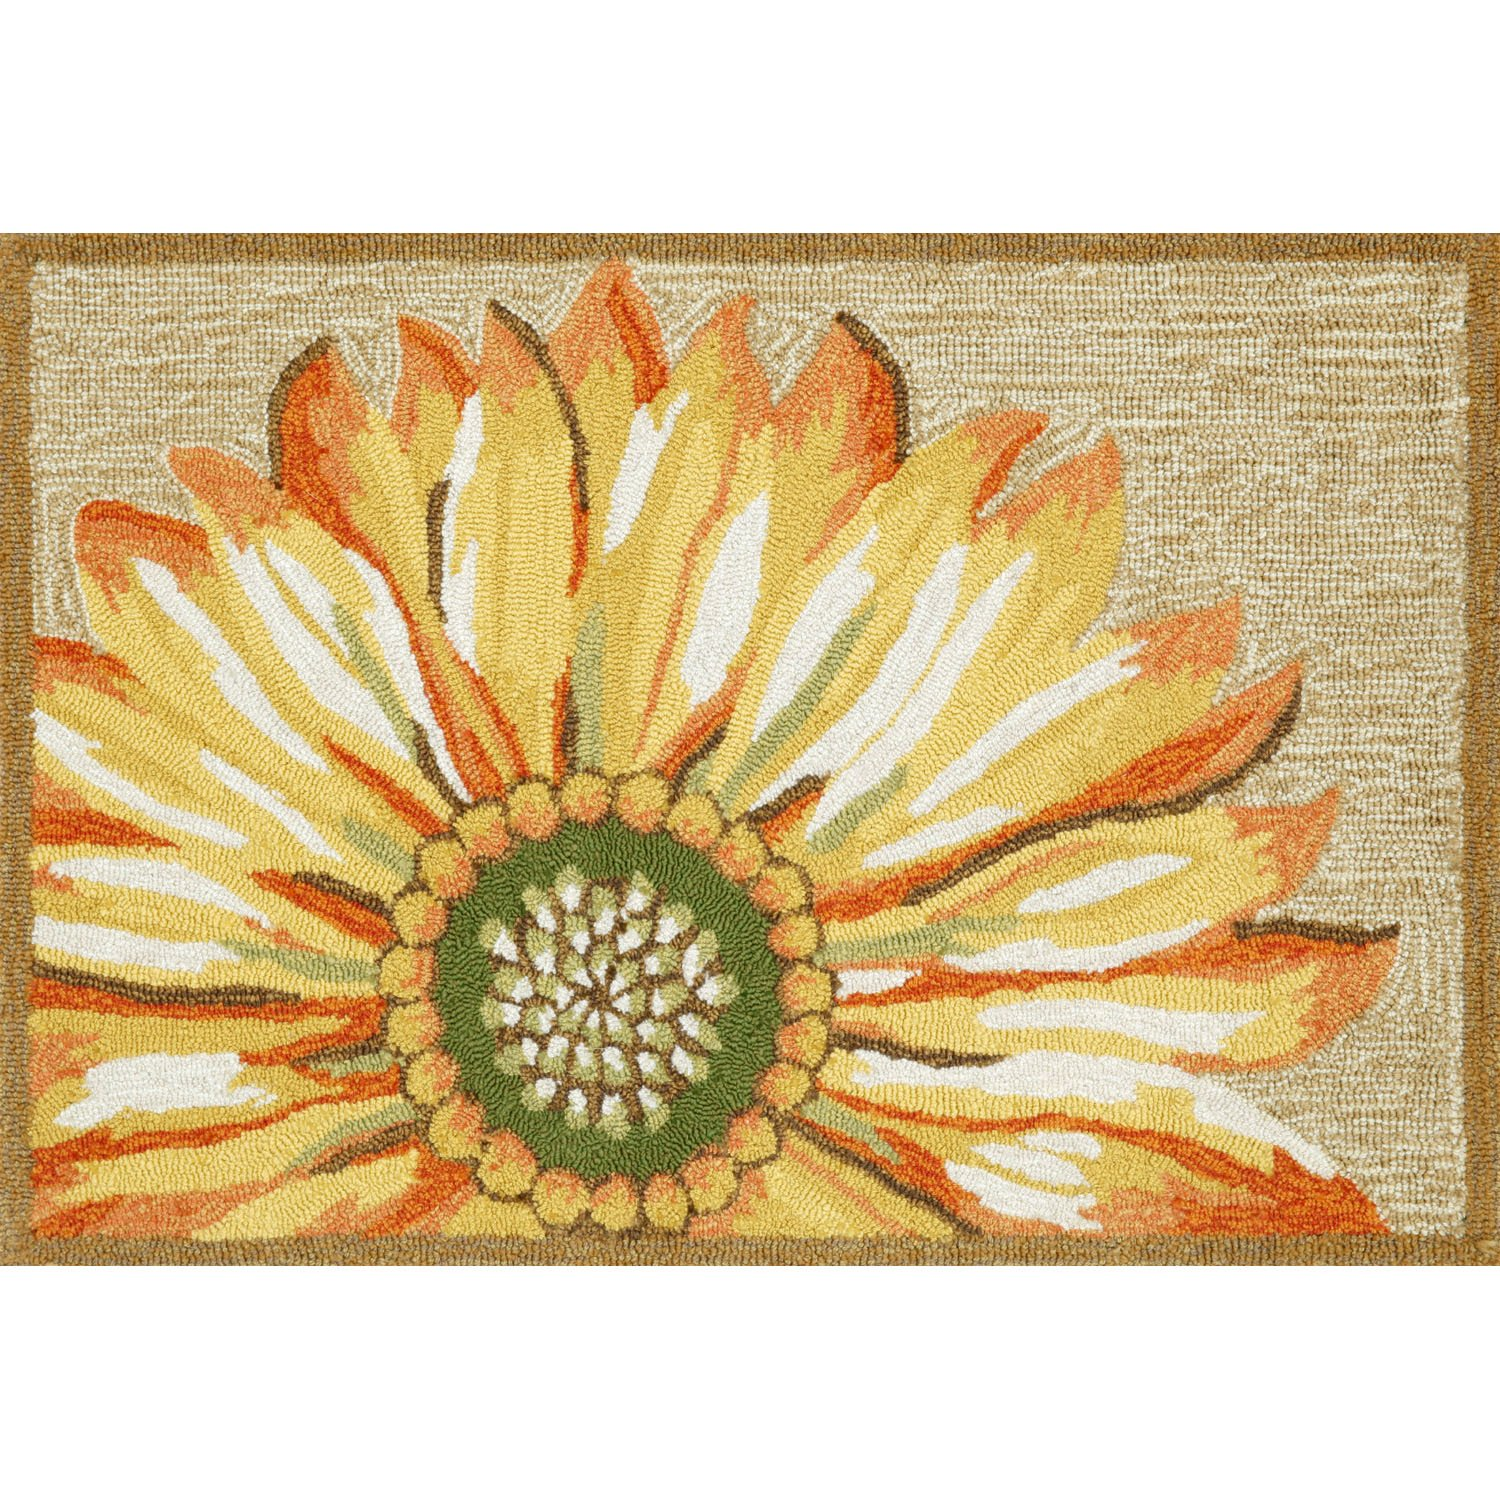 Liora Manne FT123A50209 Whimsy Flowers Rug, Indoor/Outdoor, 24'' x 36'', Yellow